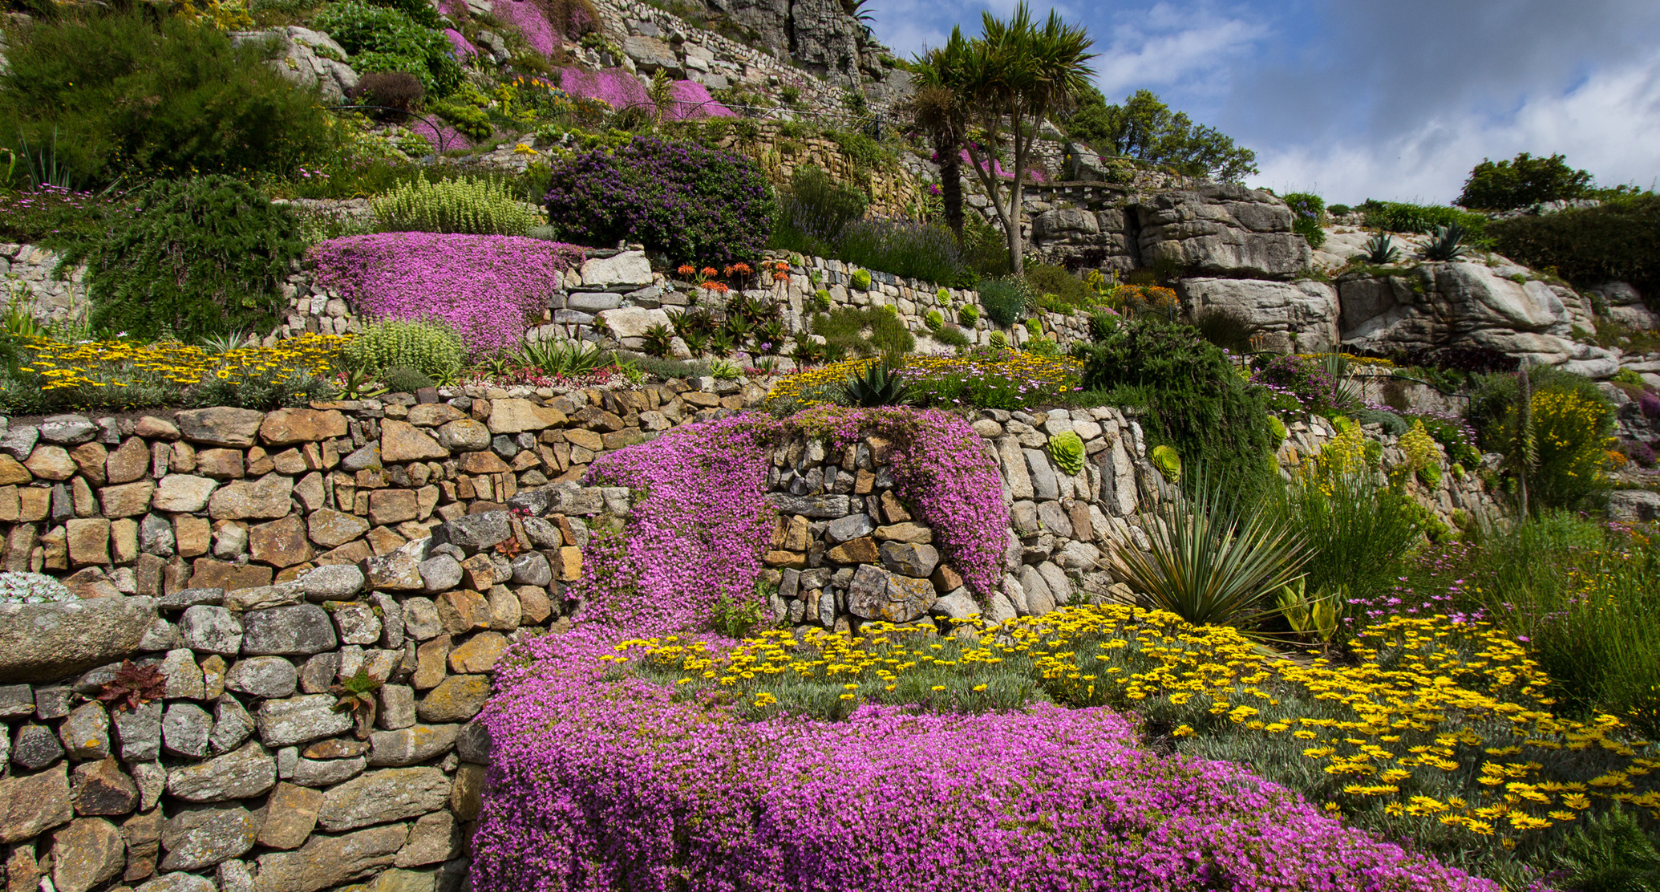 Trailing pinks in the garden on St Michael's Mount